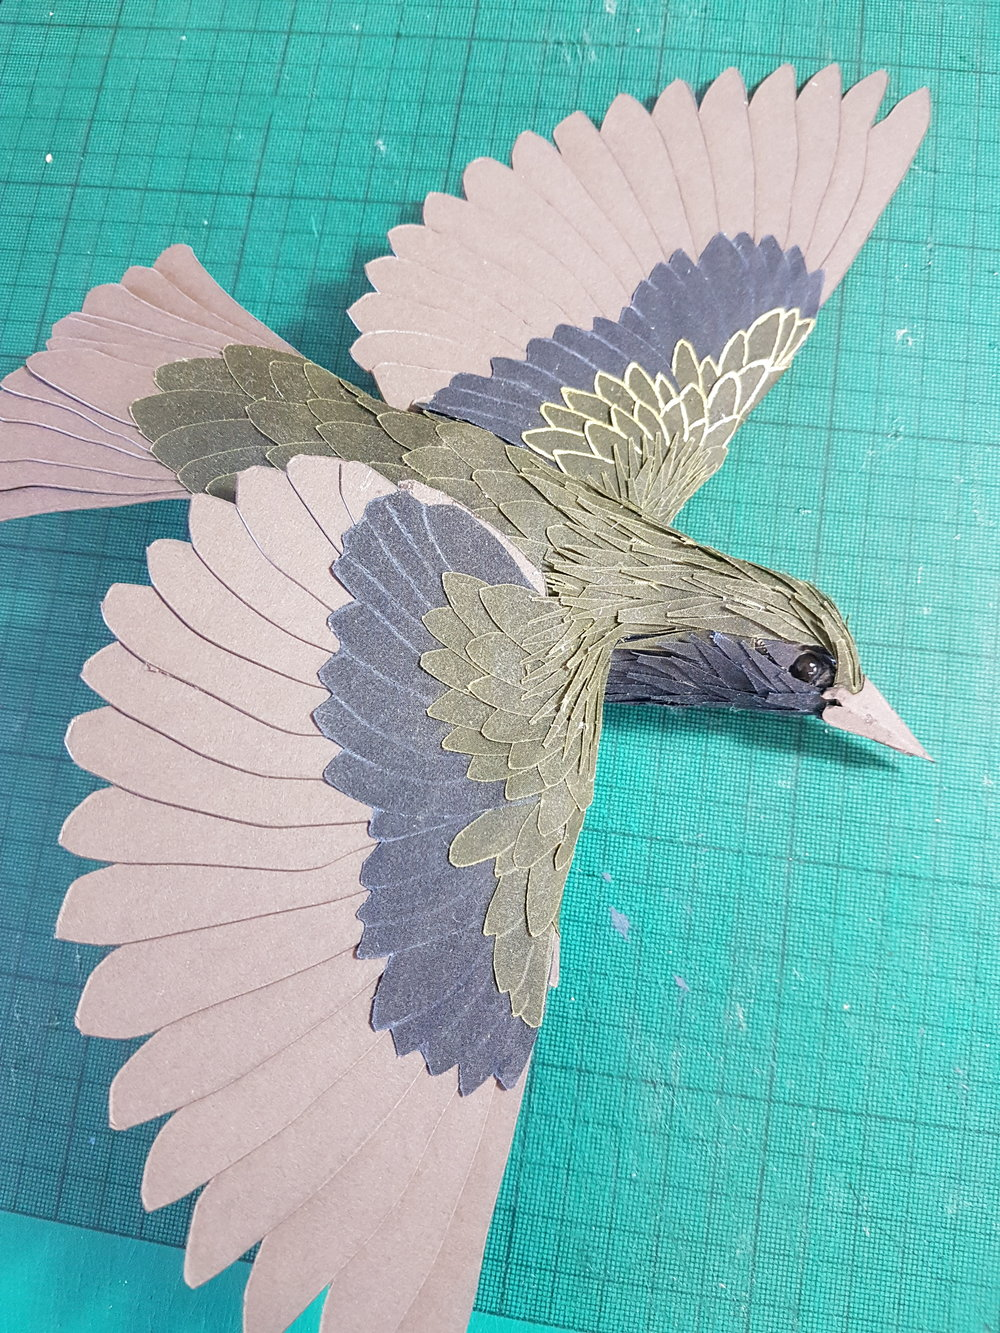 Lastly Gold paint was applied to the ends and edges of the feathers to make them look more like starlings as well as stand out when all flocking together.